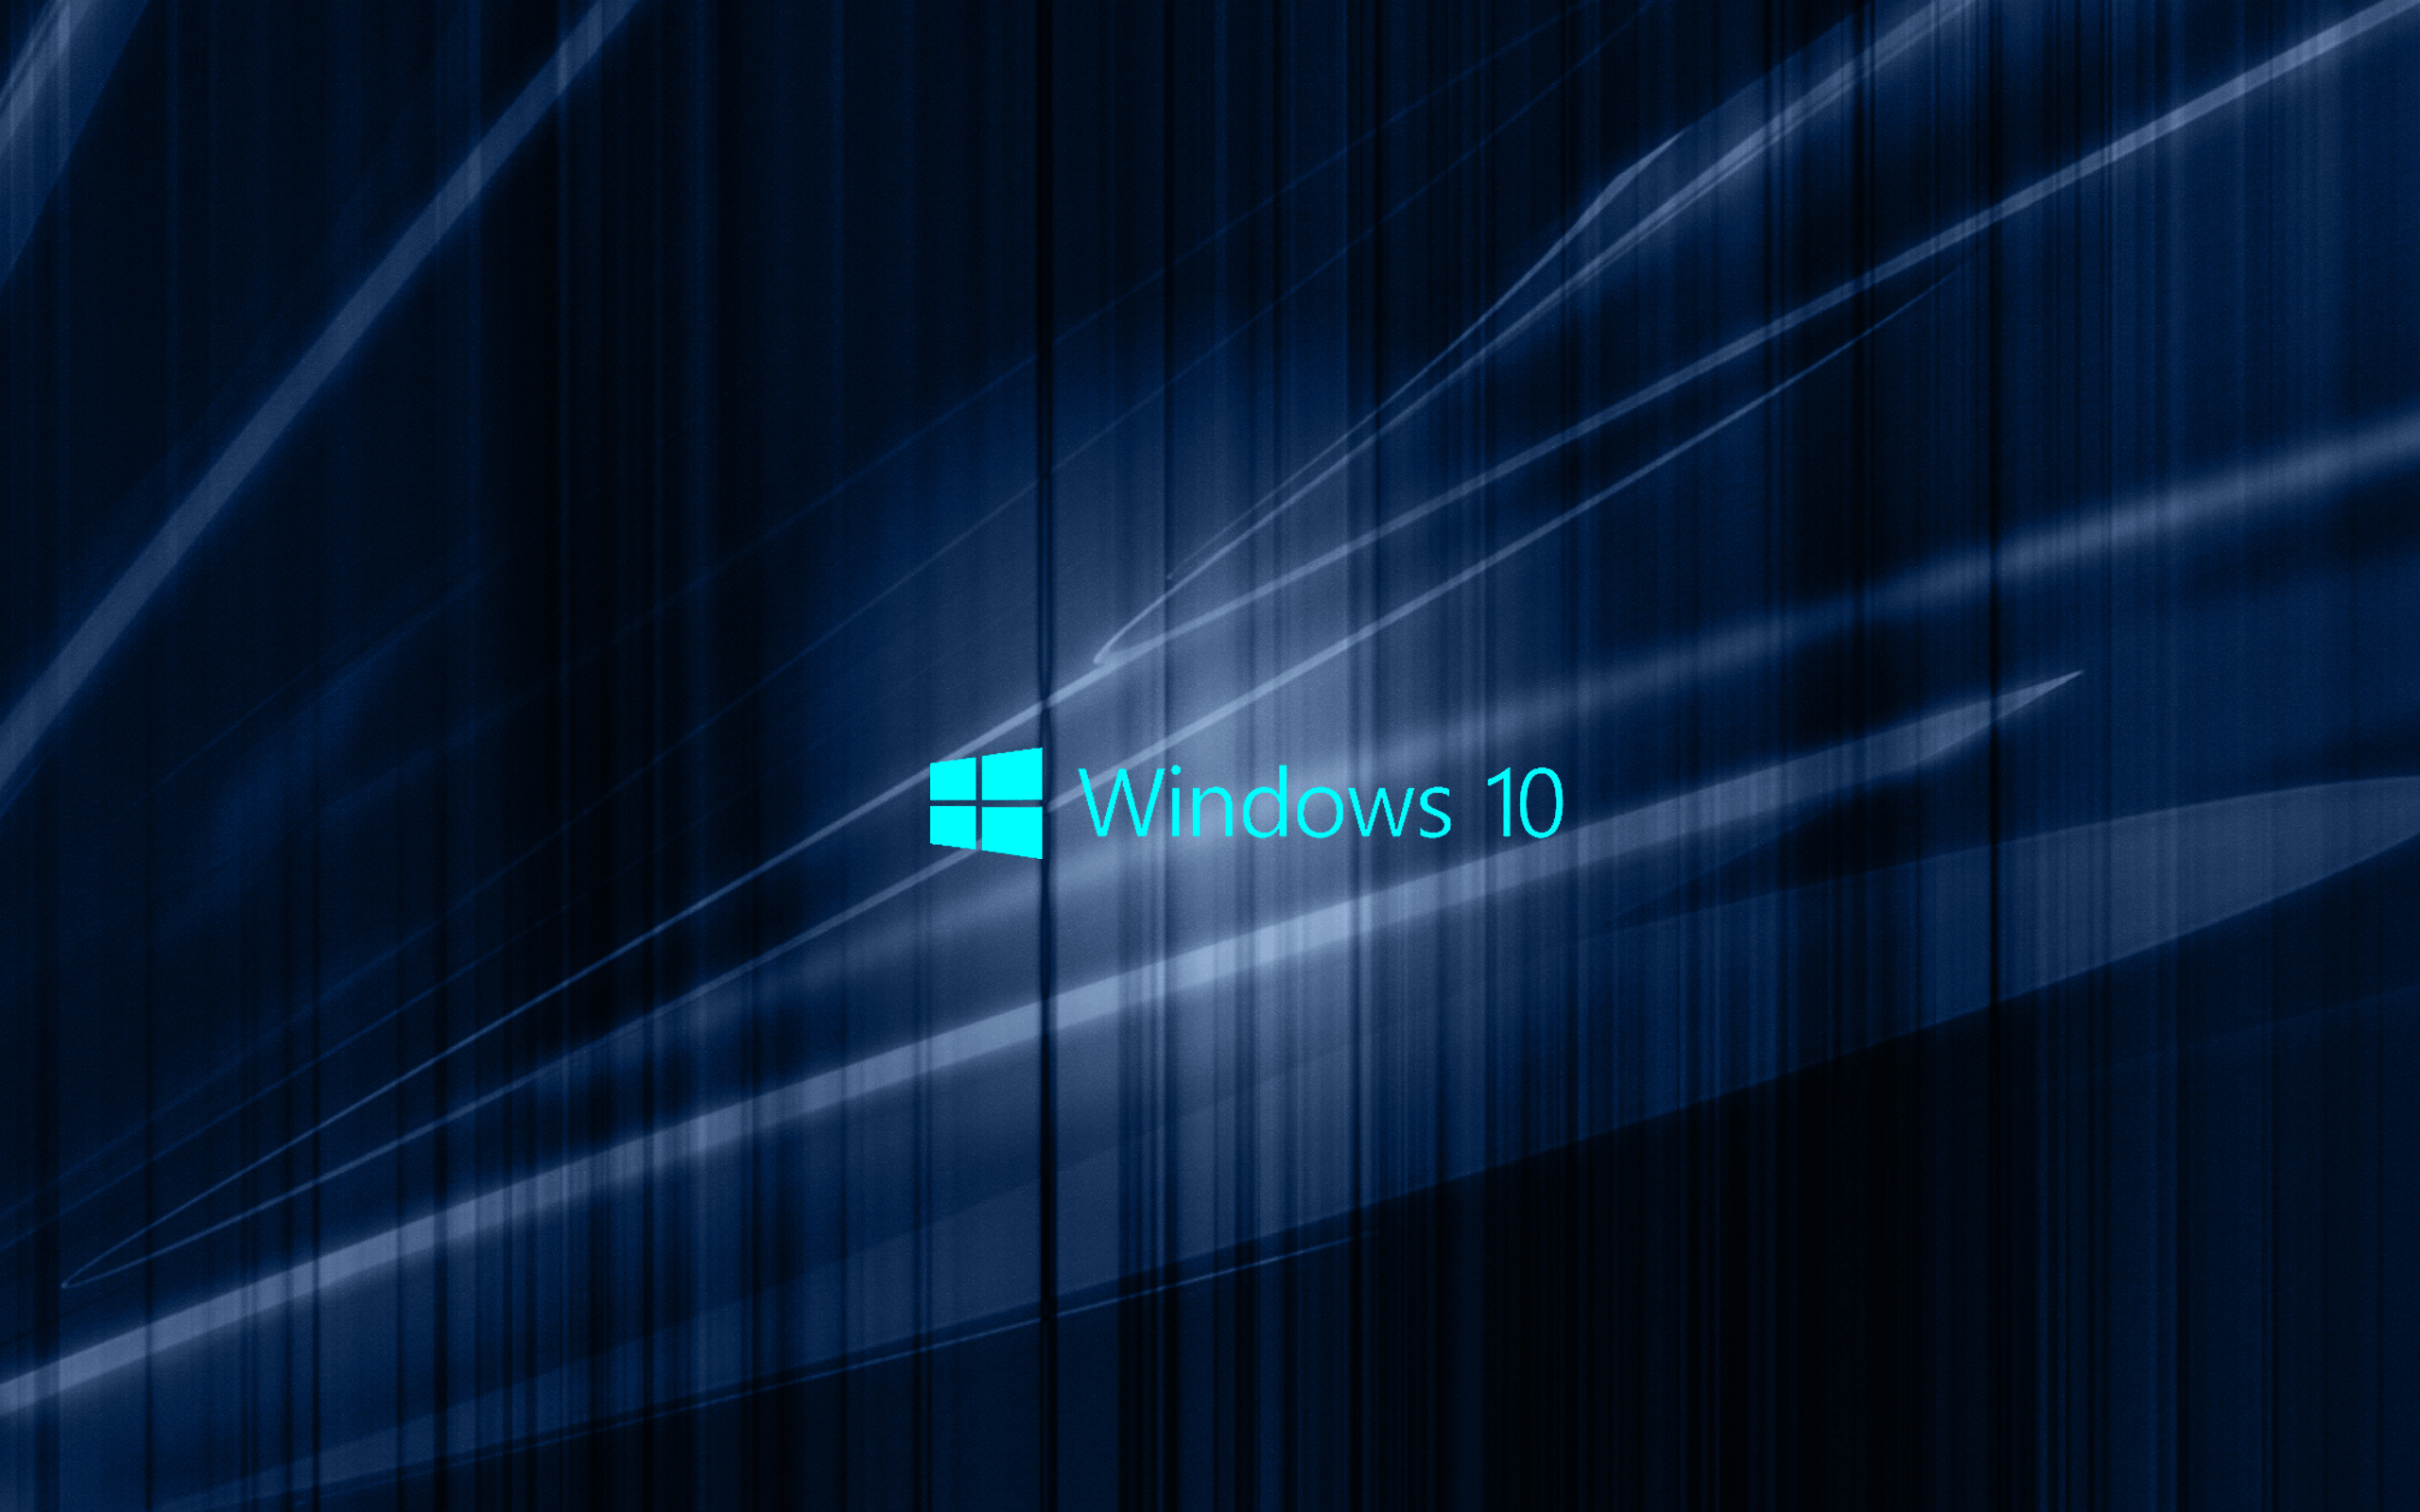 HD Wallpapers for Windows 10   Wallpapers  Backgrounds  Images. Windows 2016 Wallpapers   Wallpaper Cave